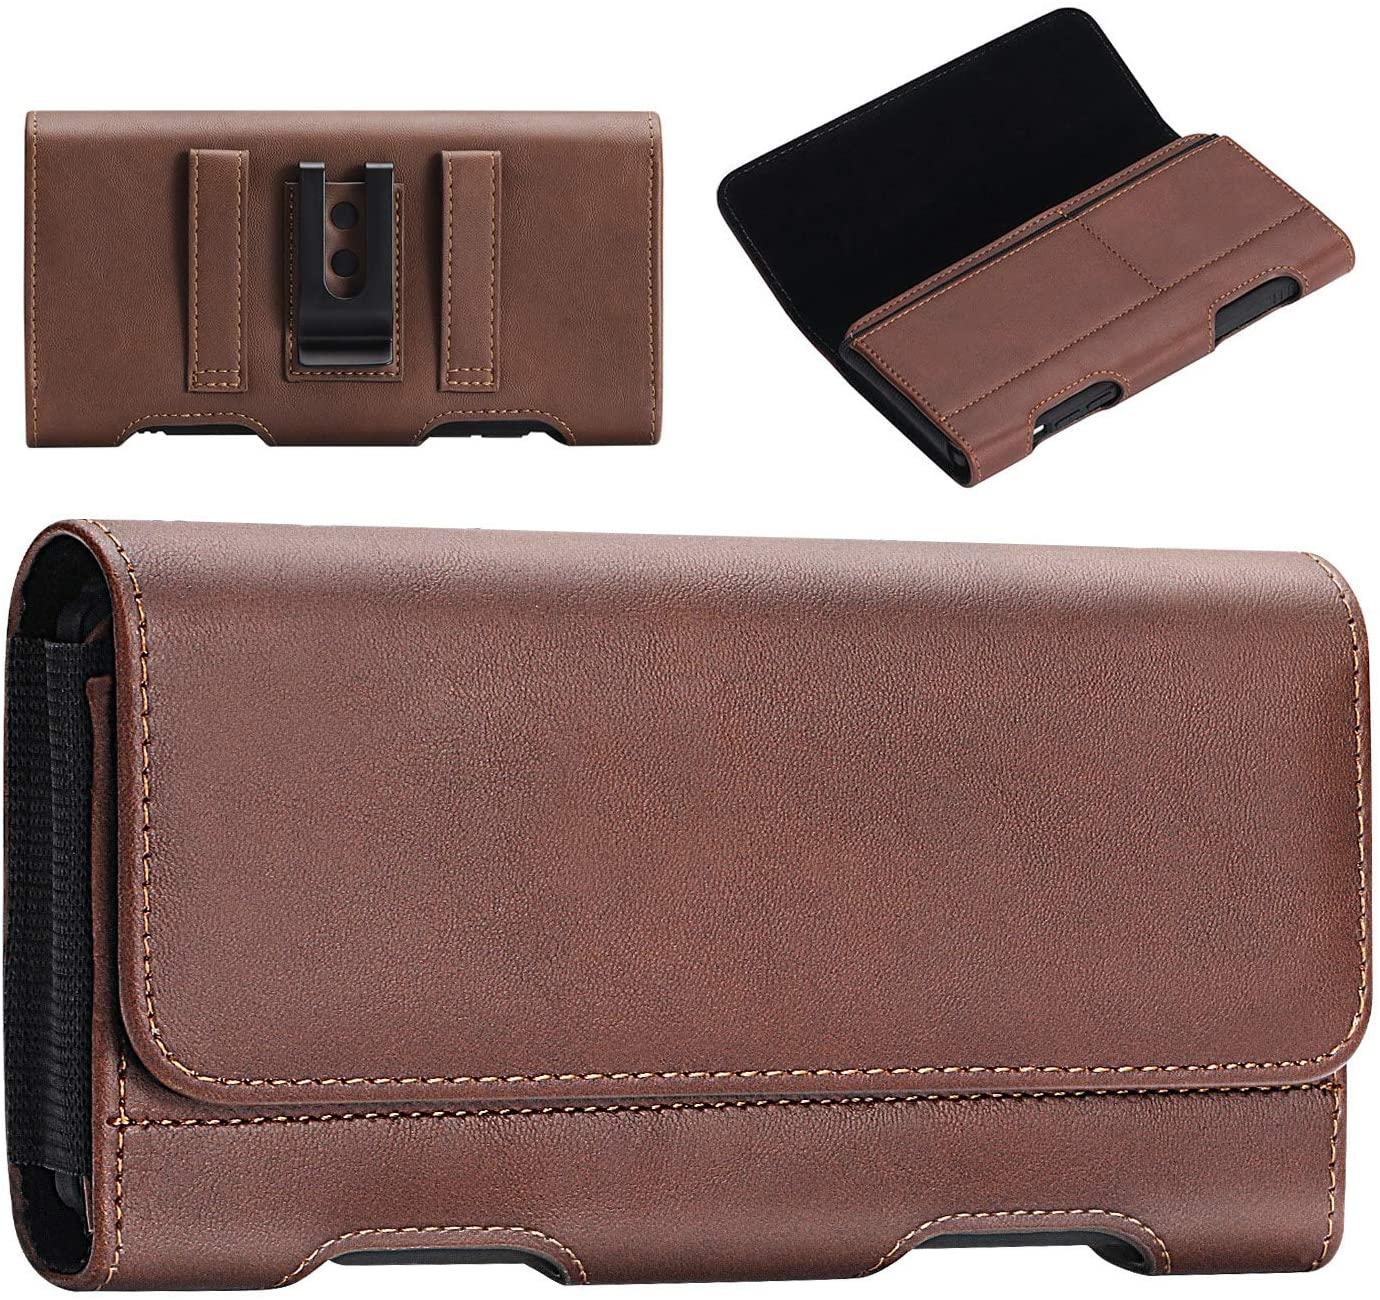 BECPLT iPhone SE 2020 Holster Case, iPhone 8 Belt Clip Case, Premium Leather Holster Pouch Loops Carrying Case with ID Card Holder for Galaxy S10e Apple iPhone 8 7 6s 6 (Fit w/Thin Case on) (Brown)